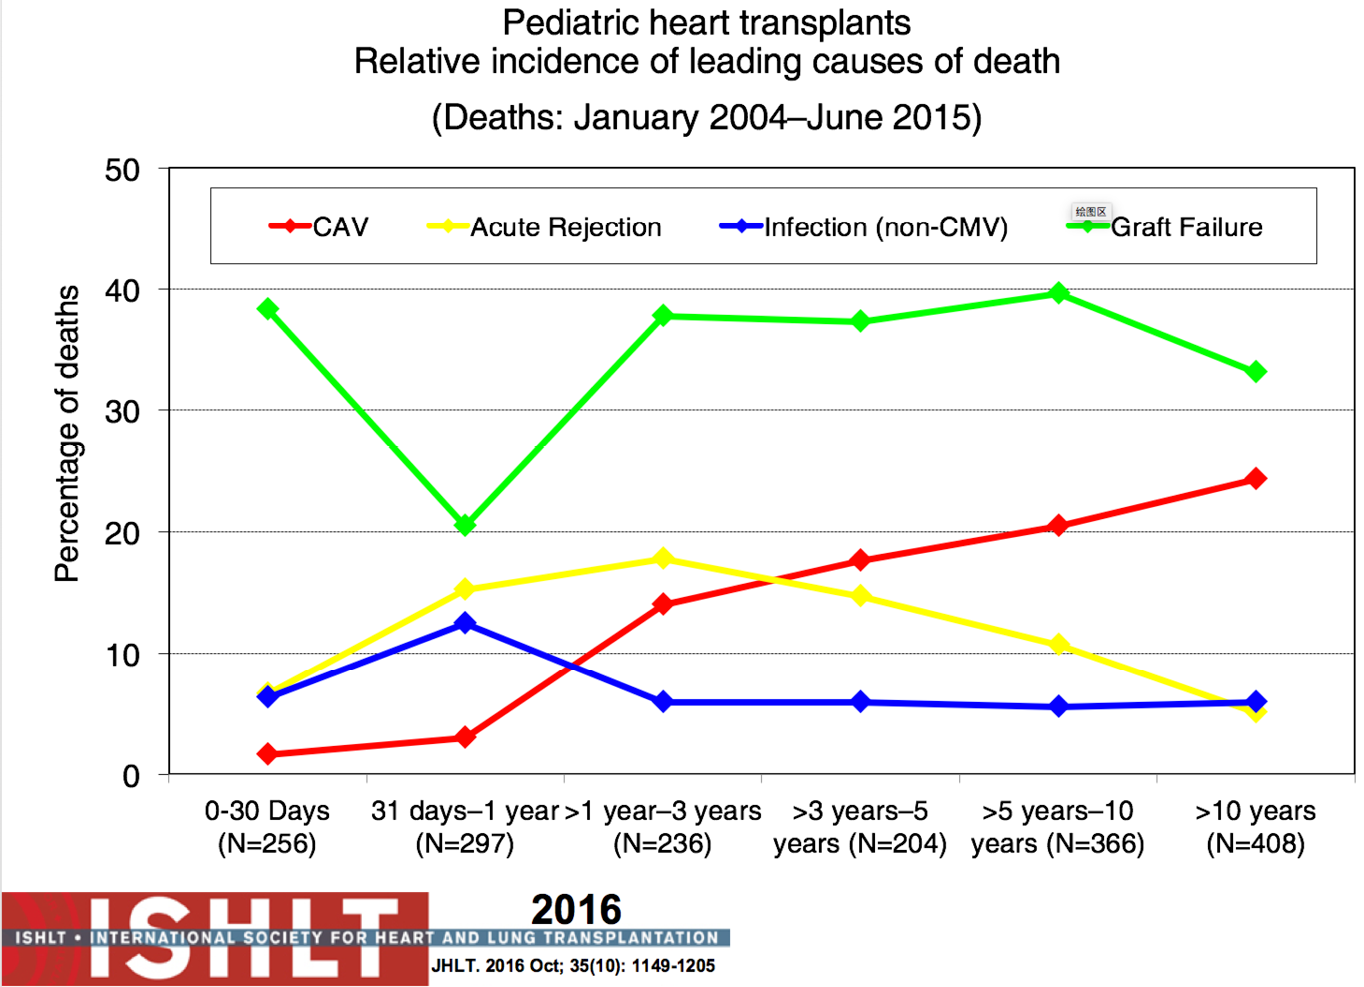 Current state of pediatric cardiac transplantation dipchand figure 14 relative incidence of the leading causes of death for the most recent era from 2004 to june 2015 following pediatric heart transplant from the ccuart Images